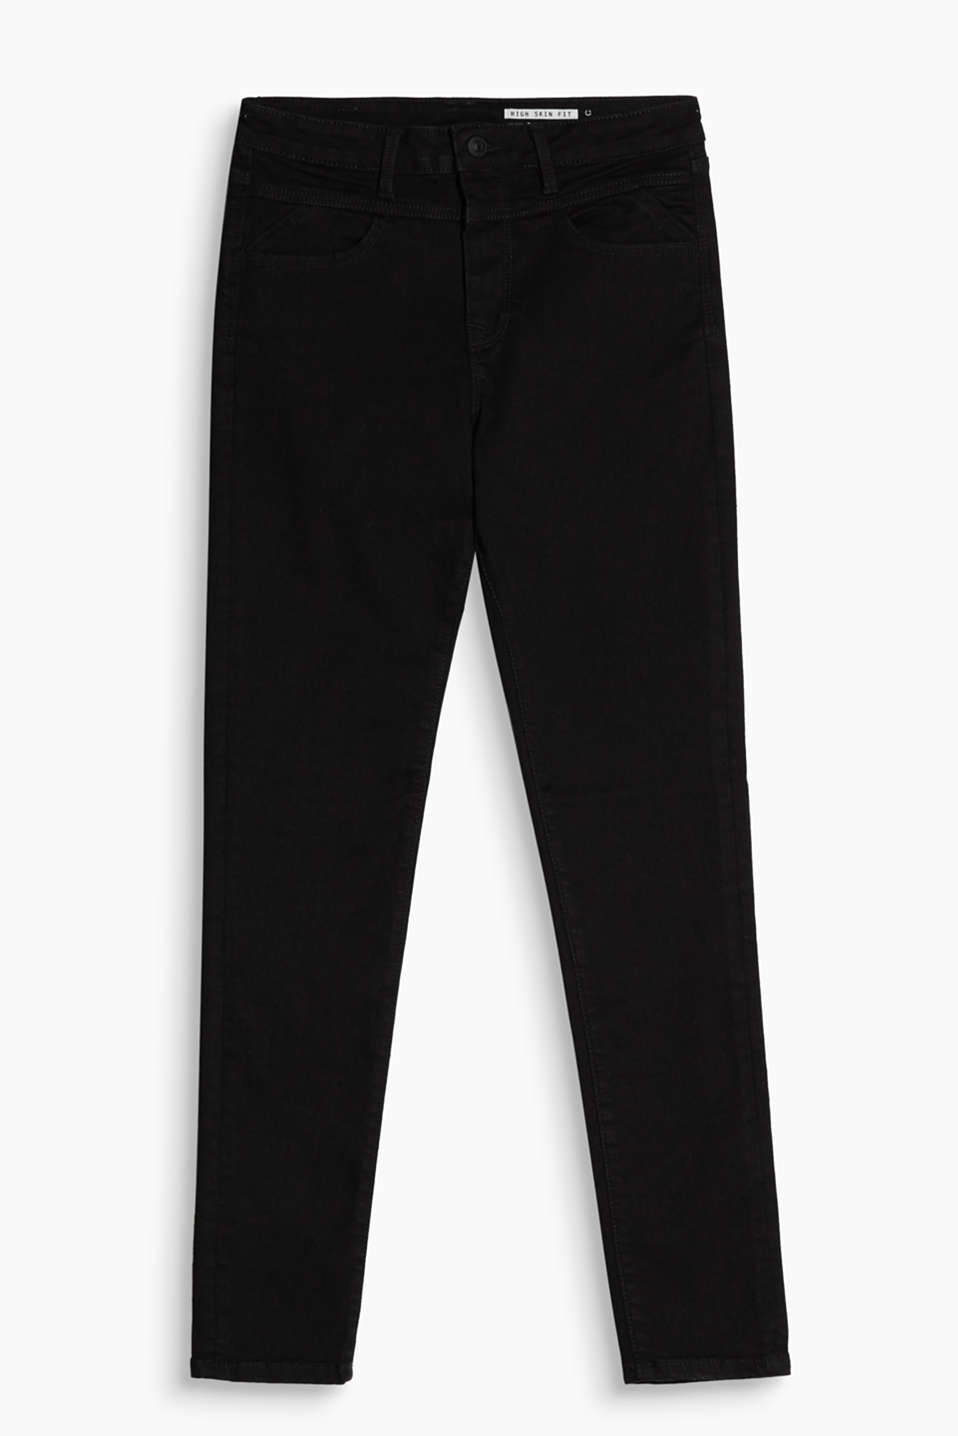 They create a sensational silhouette: High-waisted jeans made of lifting stretch denim with a cool garment wash